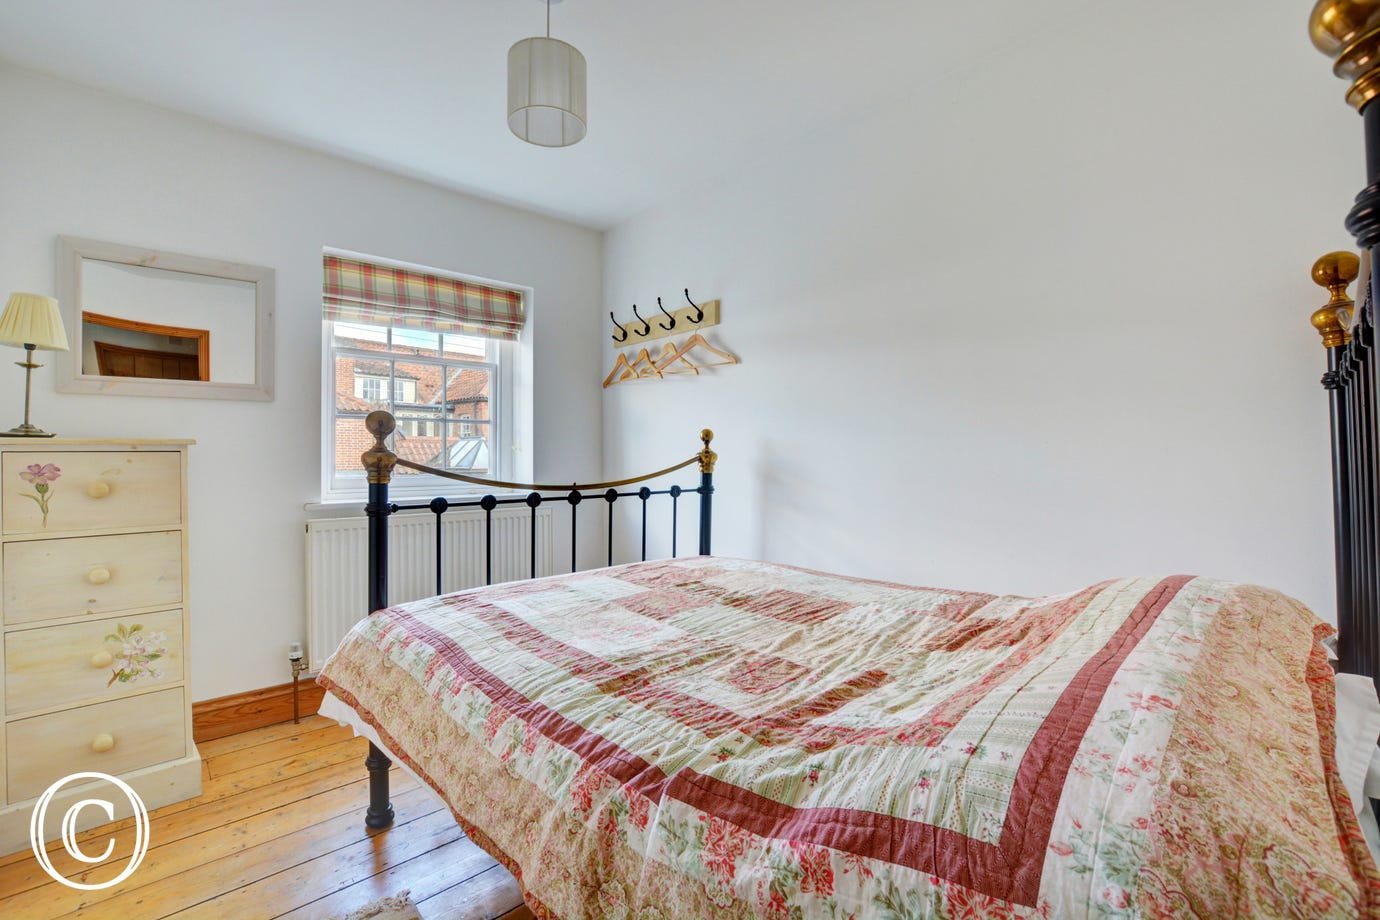 Compact but bright double bedroom with wrought iron double bed